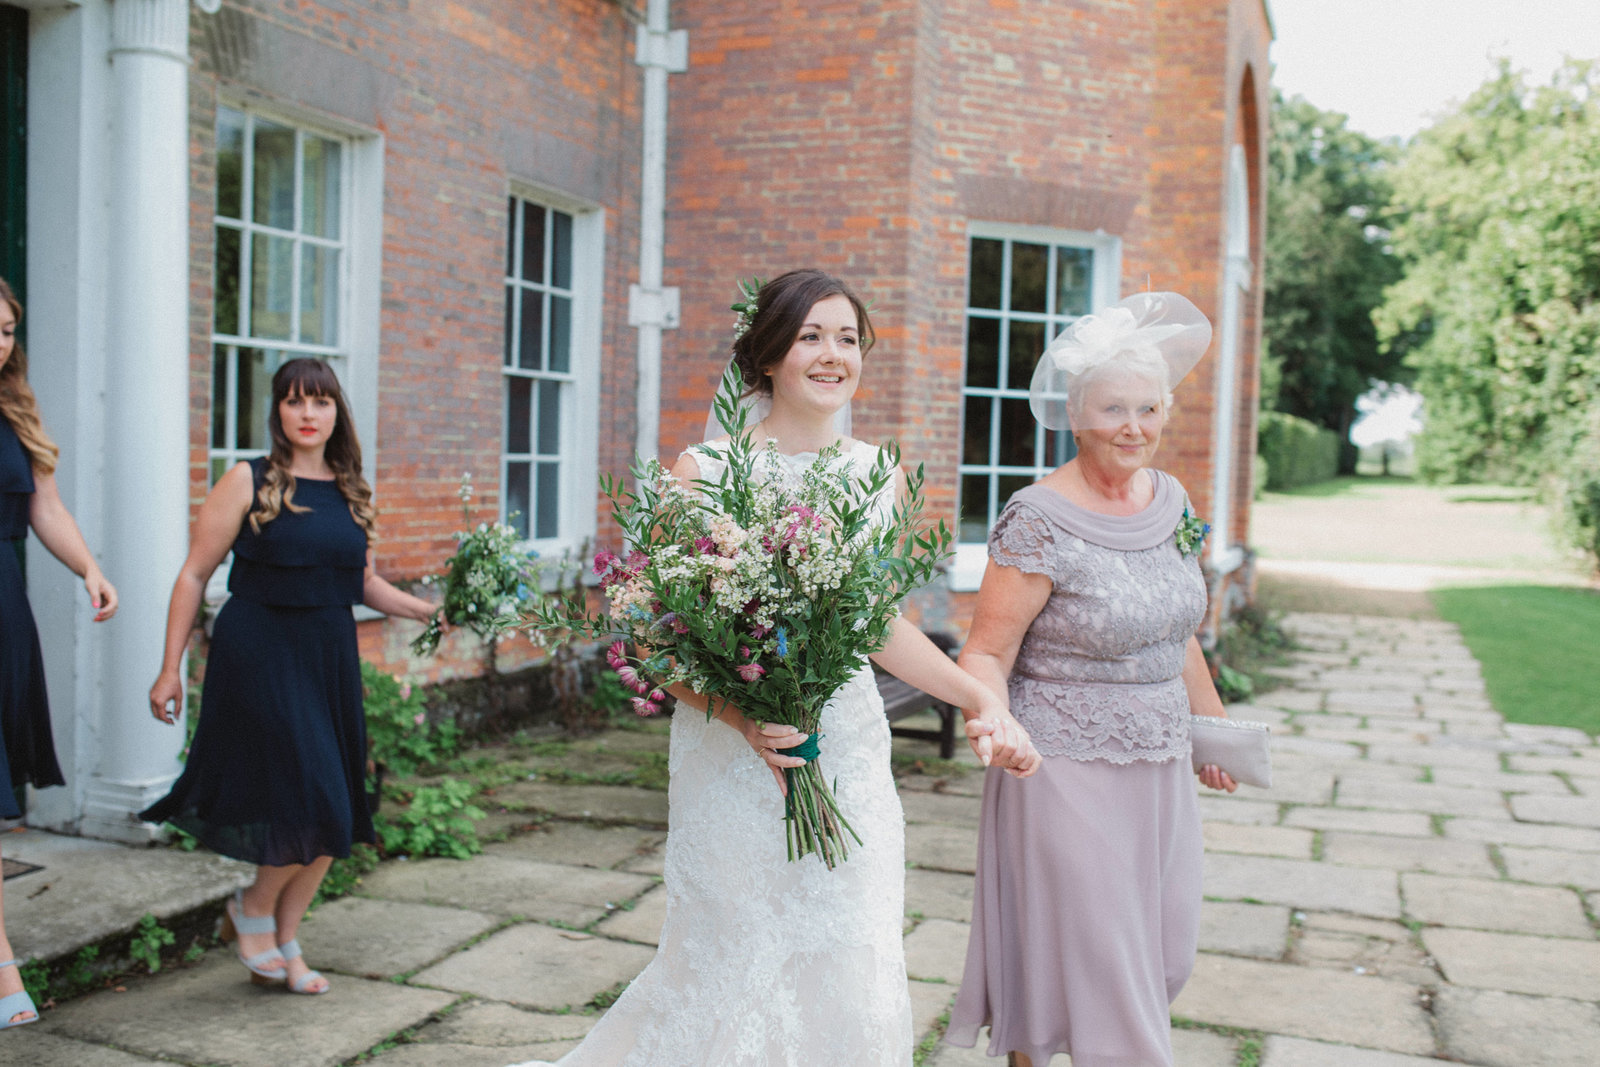 Elegant bride with her mother walking to her ceremony at St Pauls, Waldenbury wedding ceremony